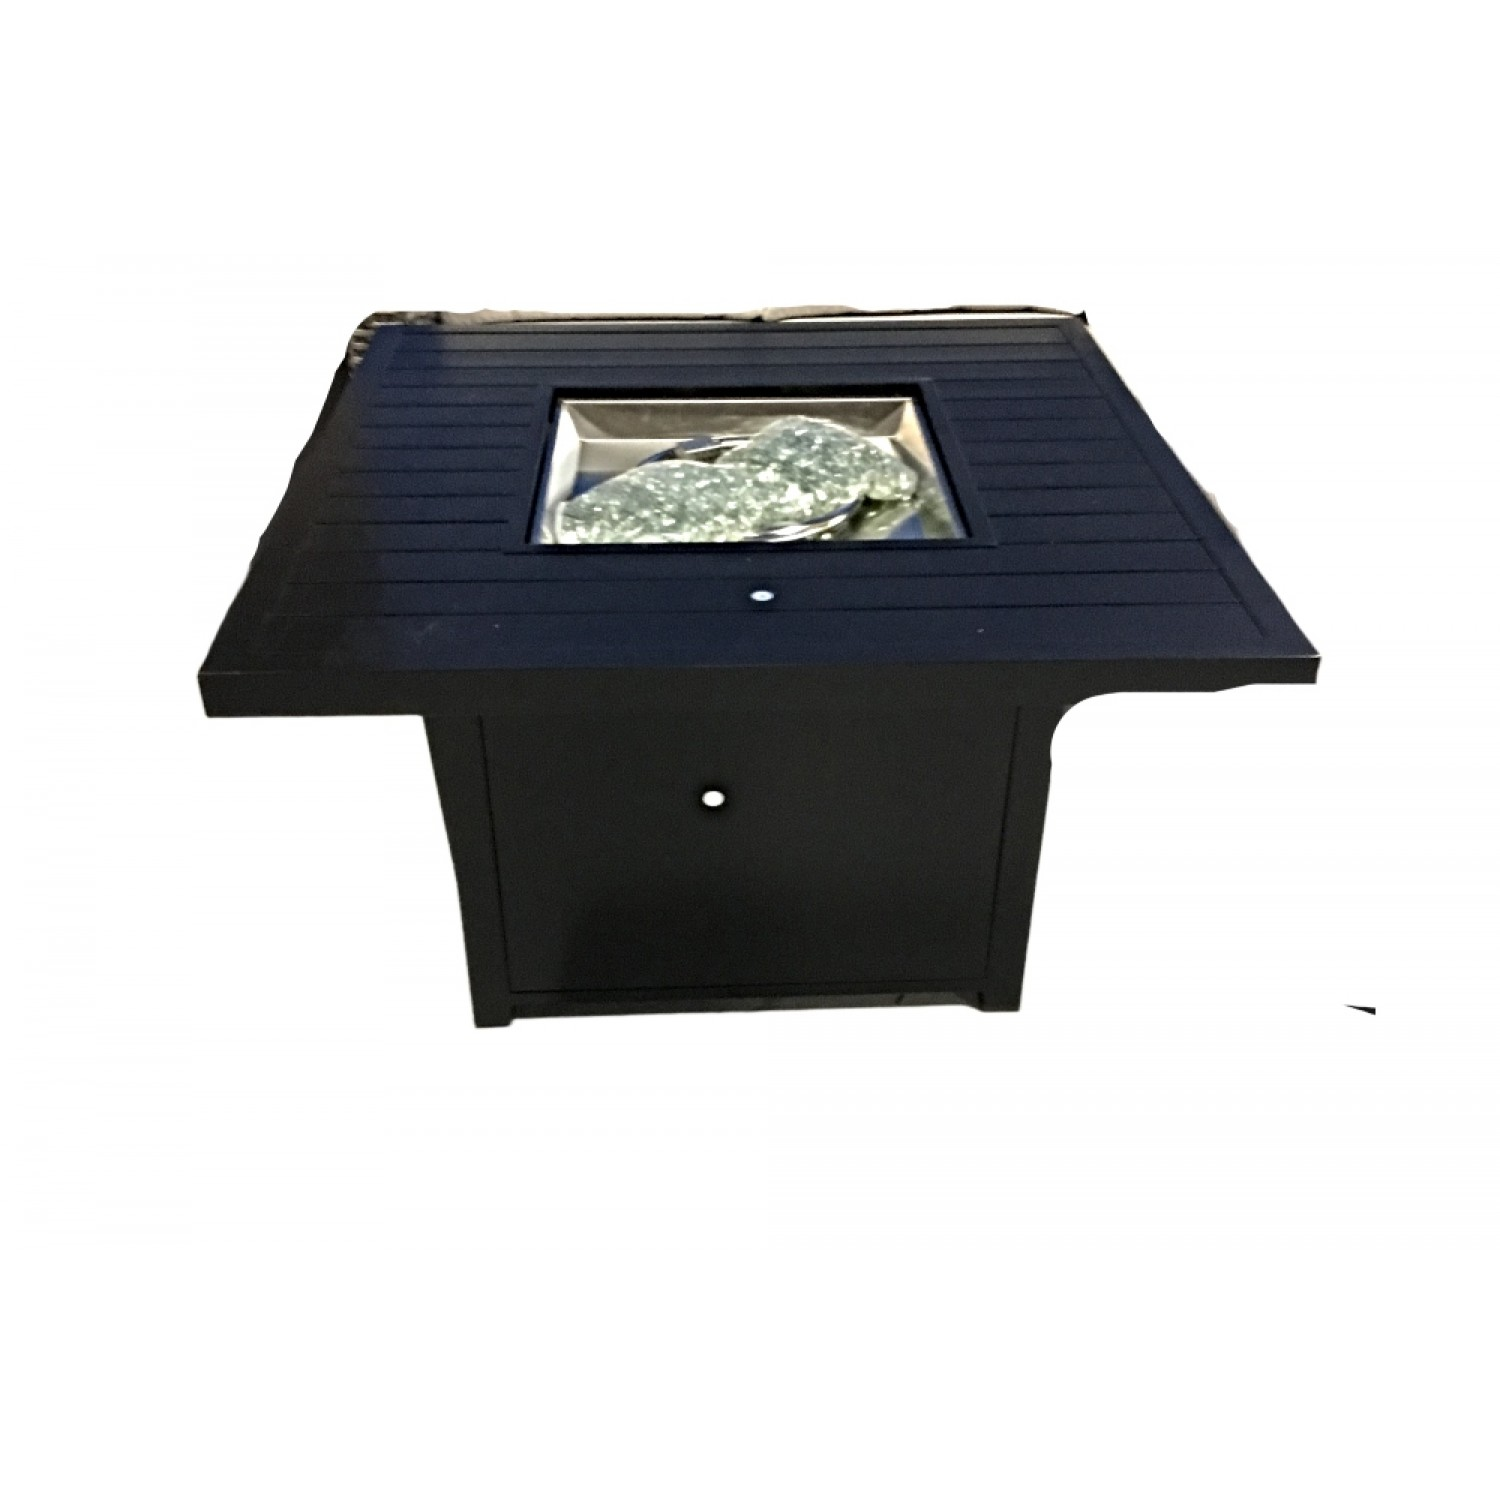 Enclover Square Firetable